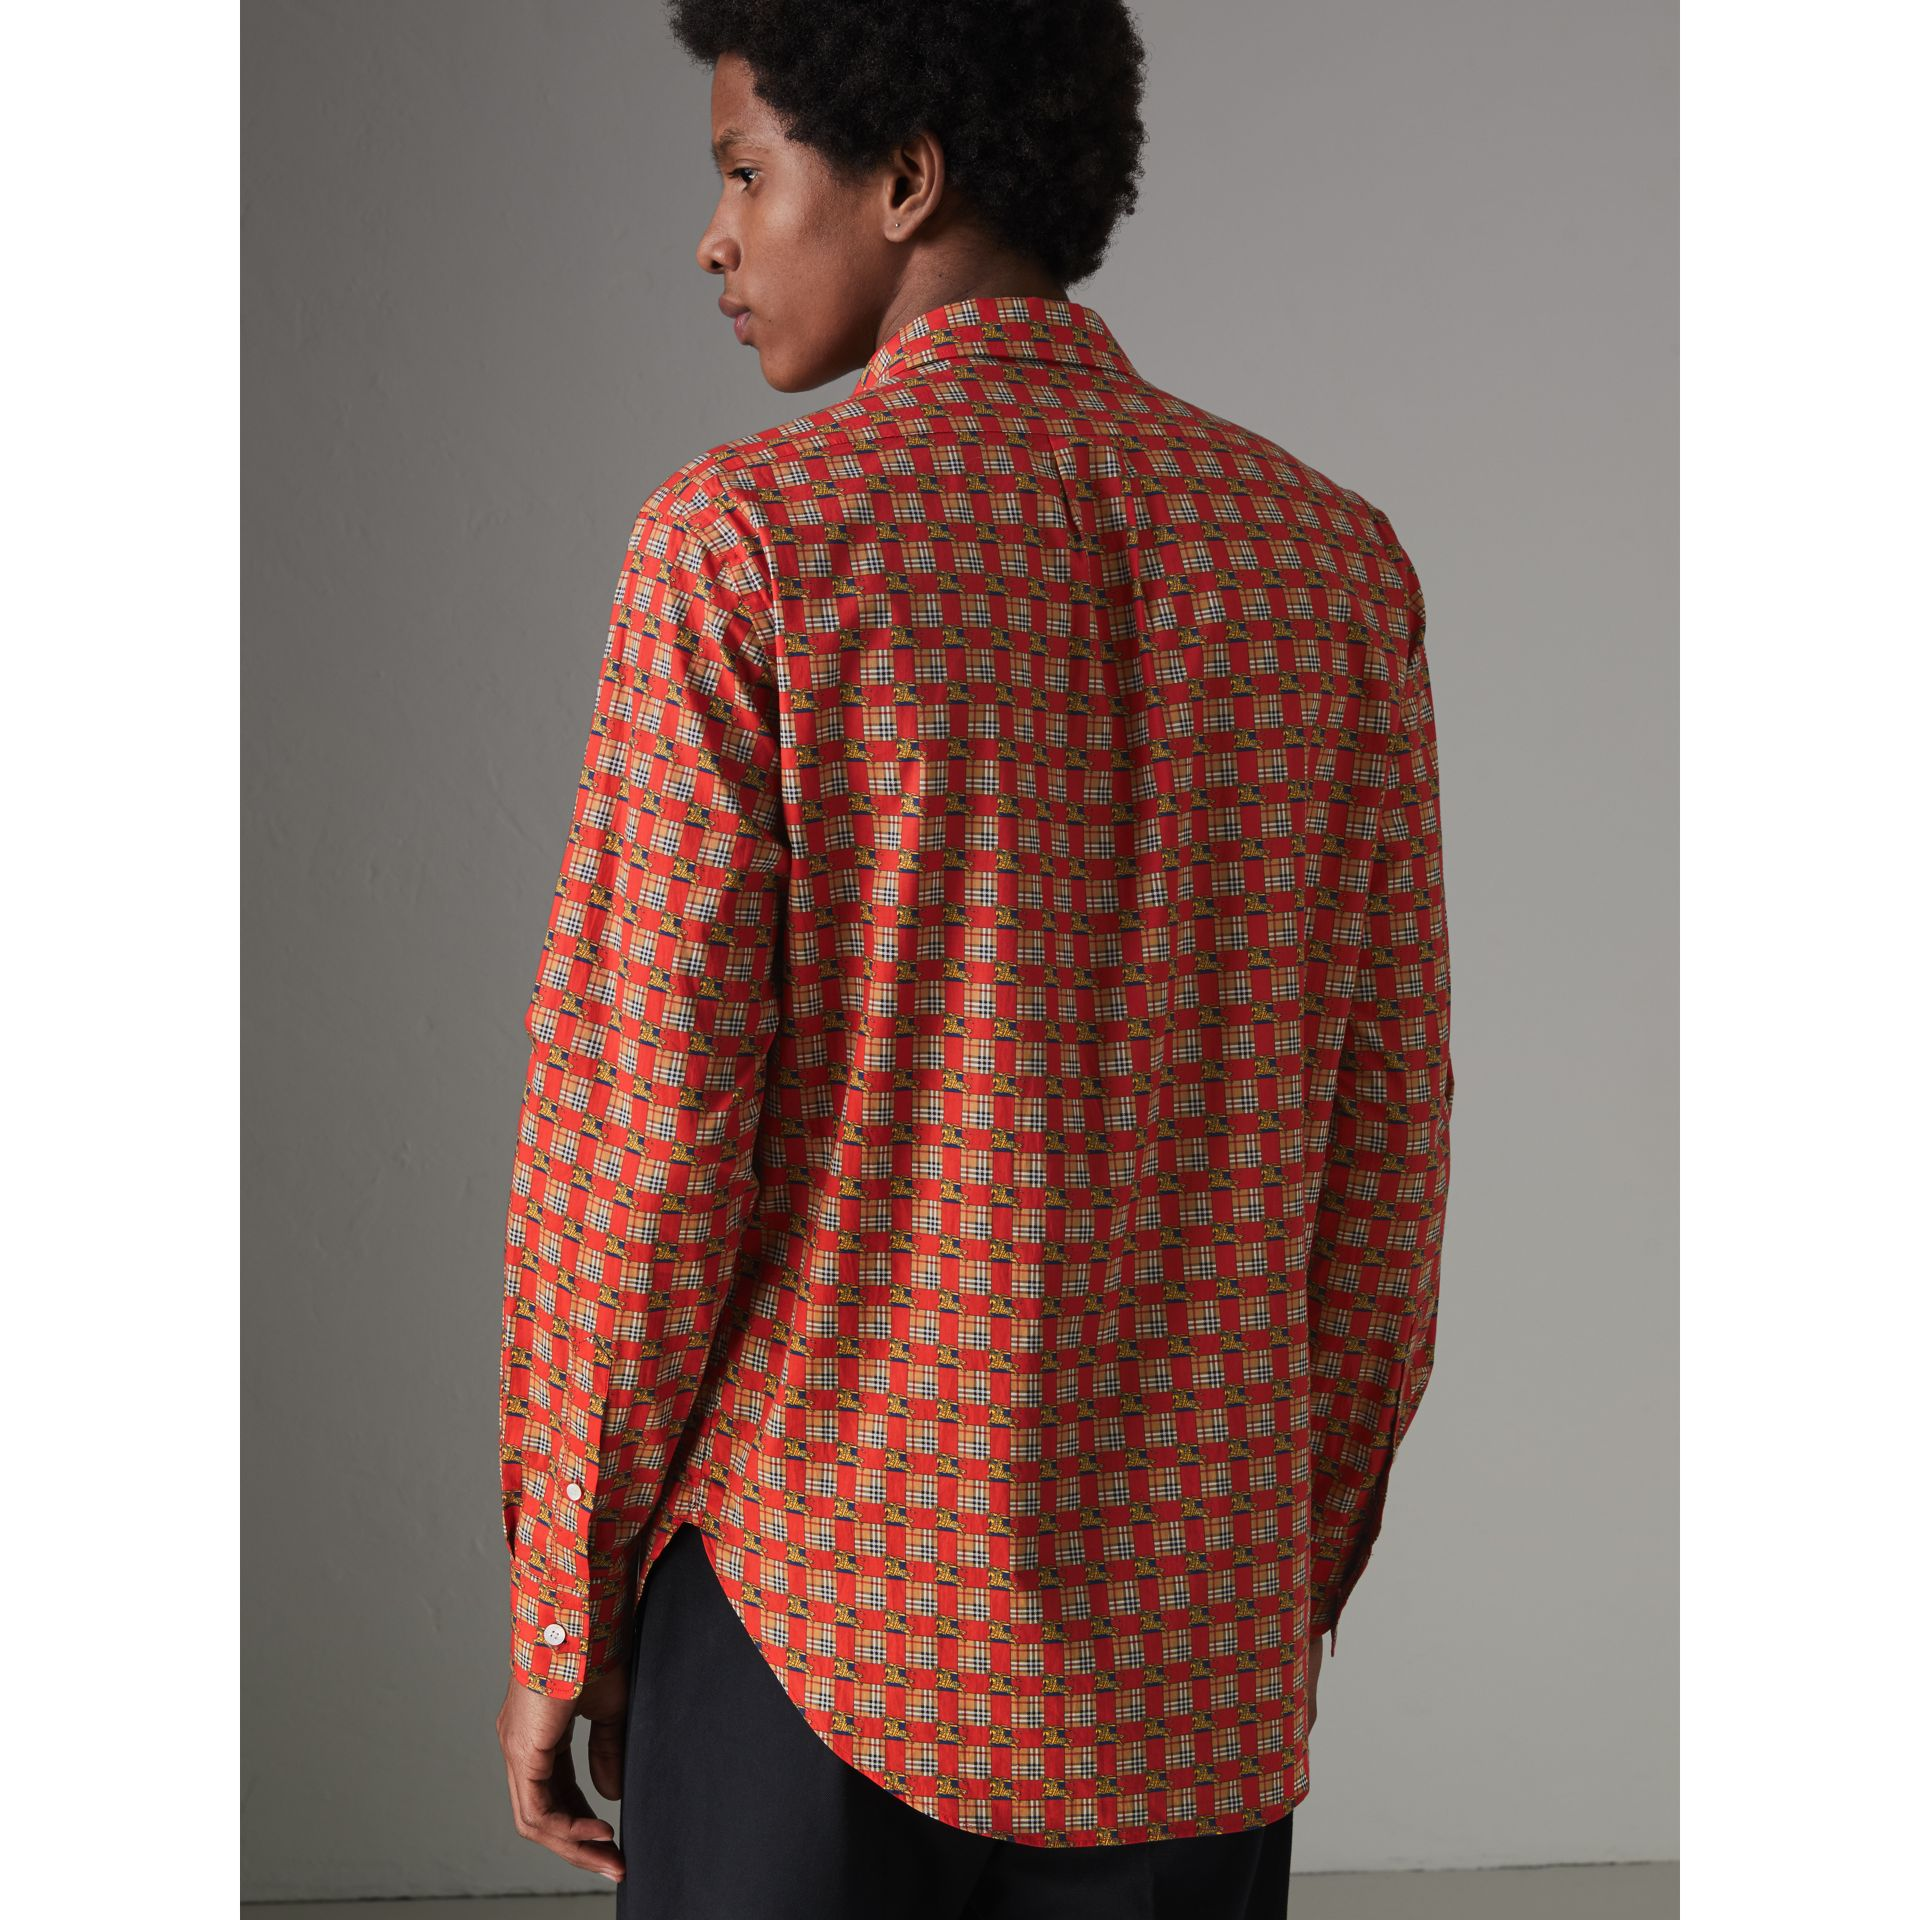 Tiled Archive Print Cotton Shirt in Bright Red - Men | Burberry - gallery image 2